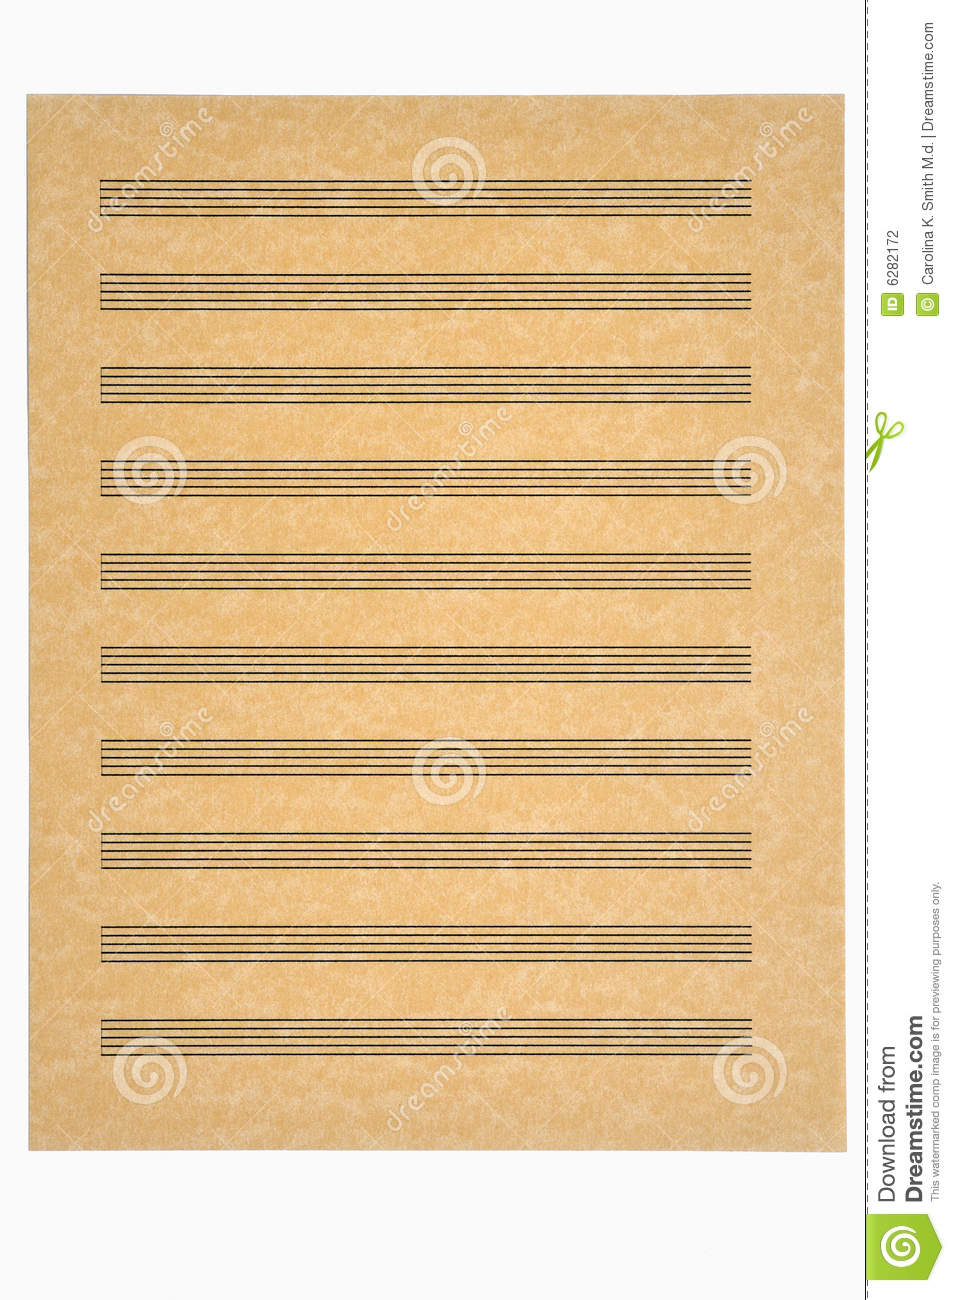 Blank Music Sheet With 10 Staves On Parchment Paper Ready For Your